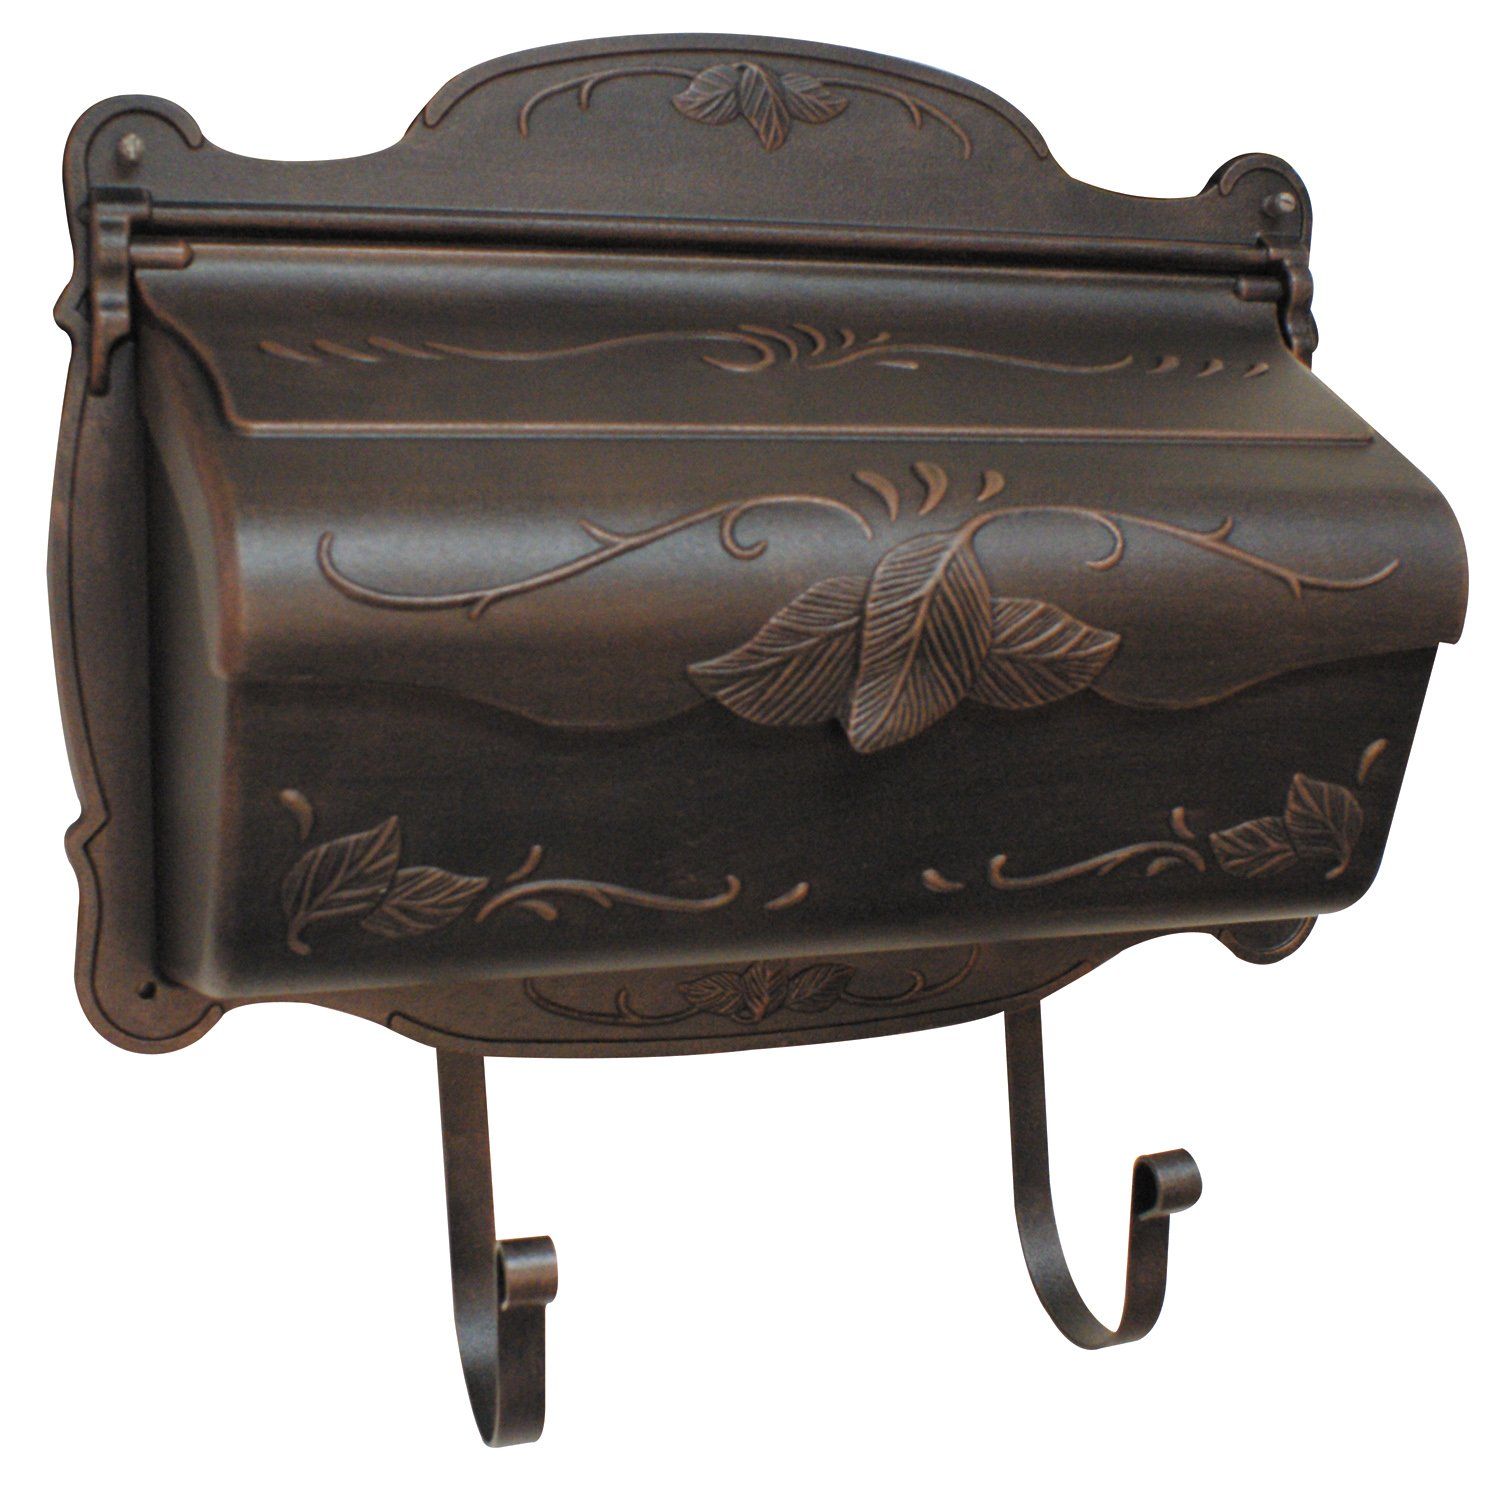 Special Lite Products Shf-1001-CP Floral Horizontal Mailbox, Copper